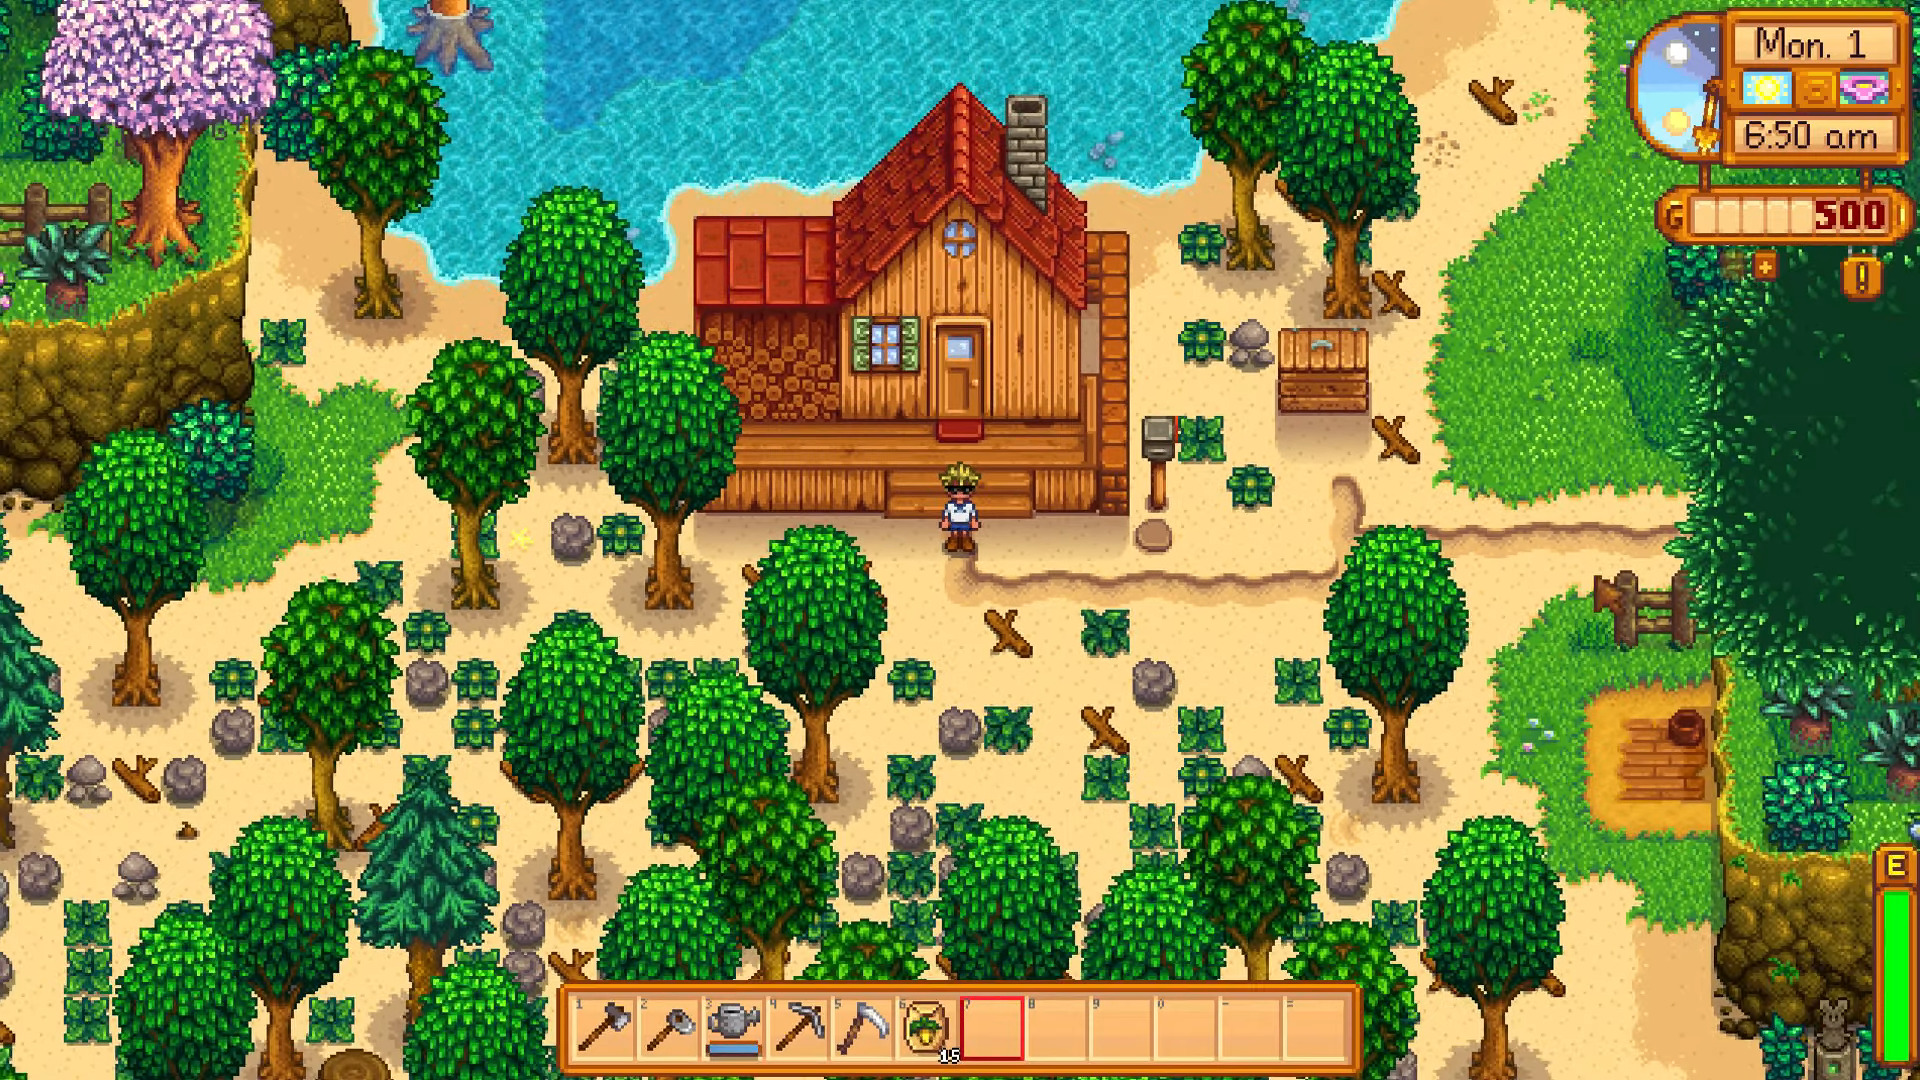 Stardew Valley 1.5 Update Out On PC In Time For The Holidays – Patch Notes And Features